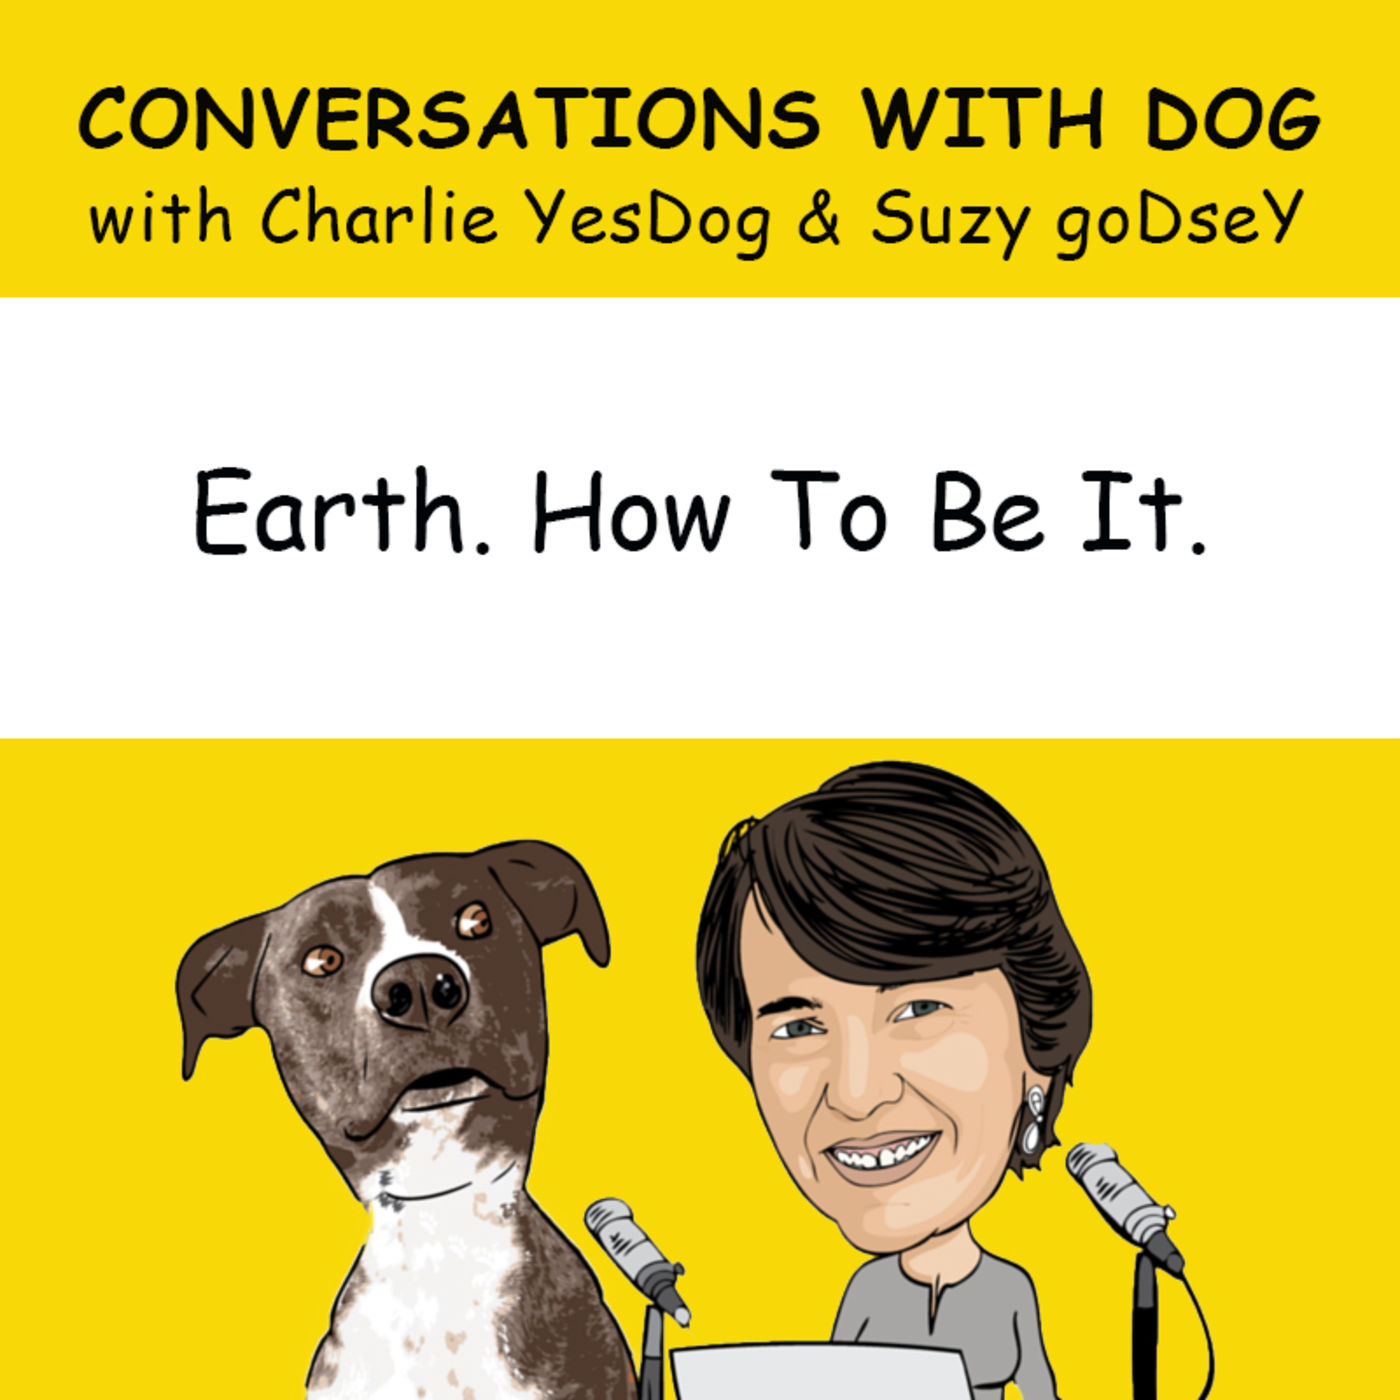 Conversations with Dog - Earth. How To Be It.